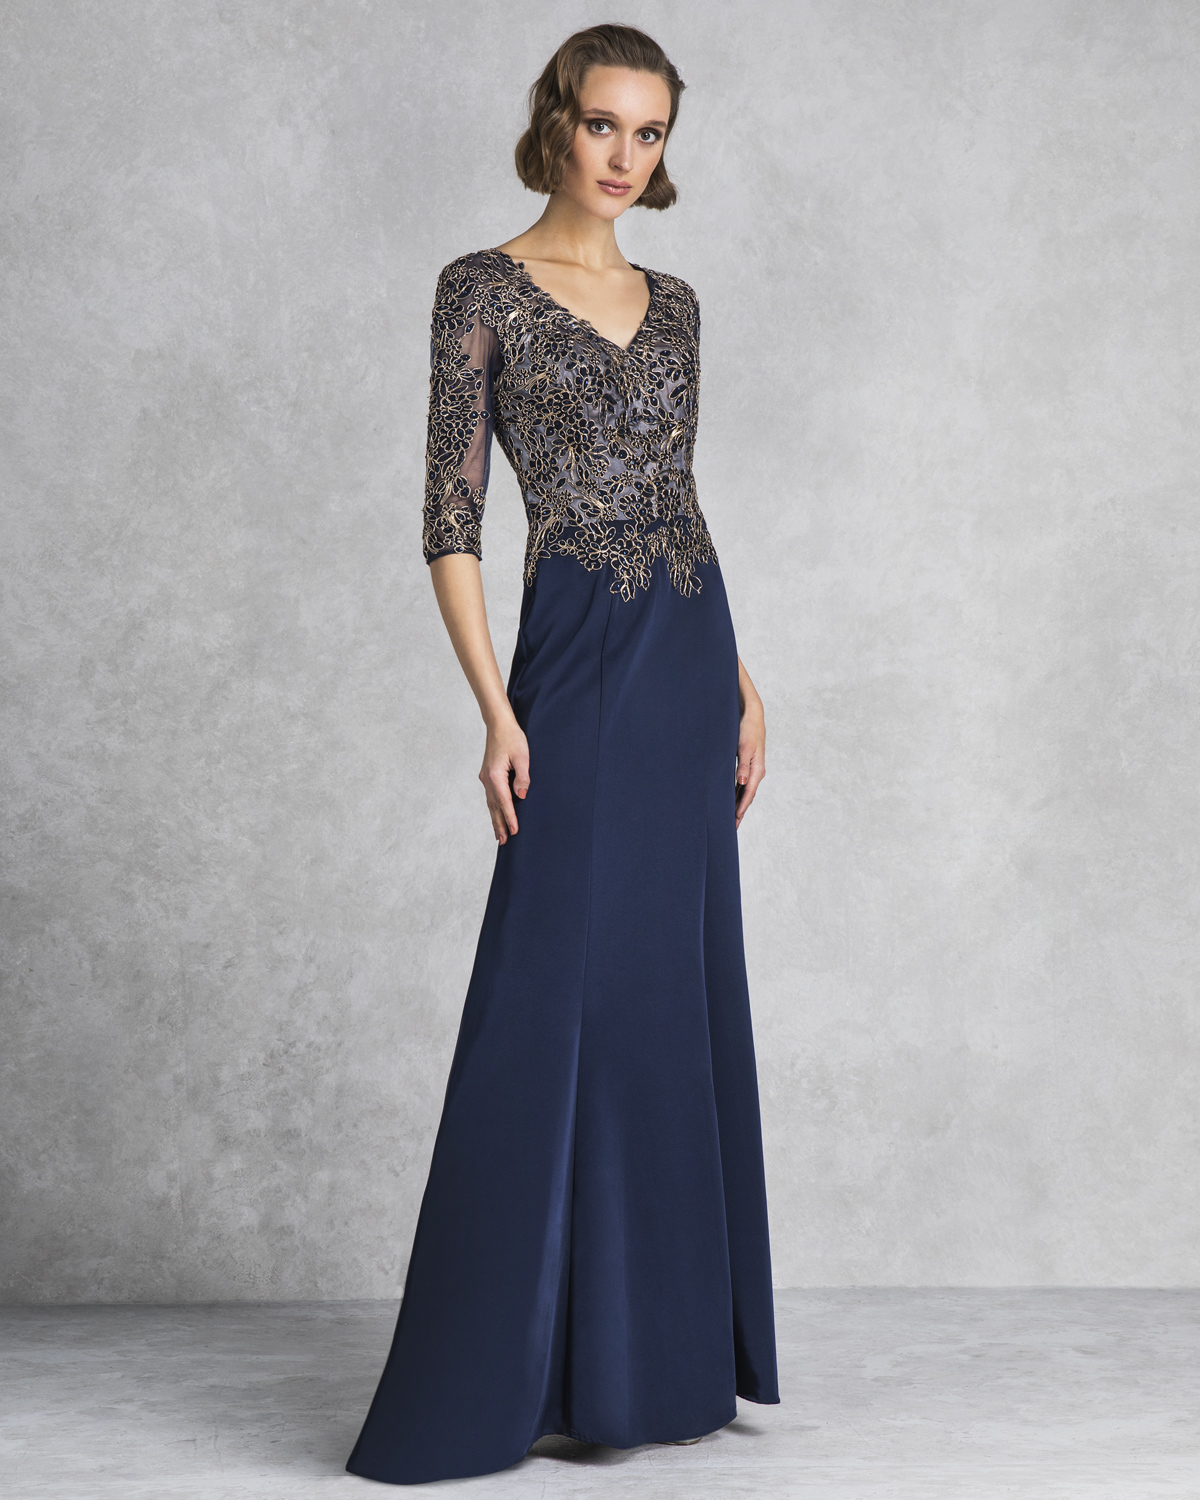 Classic Dresses / Long evening dress with long sleeves and beading